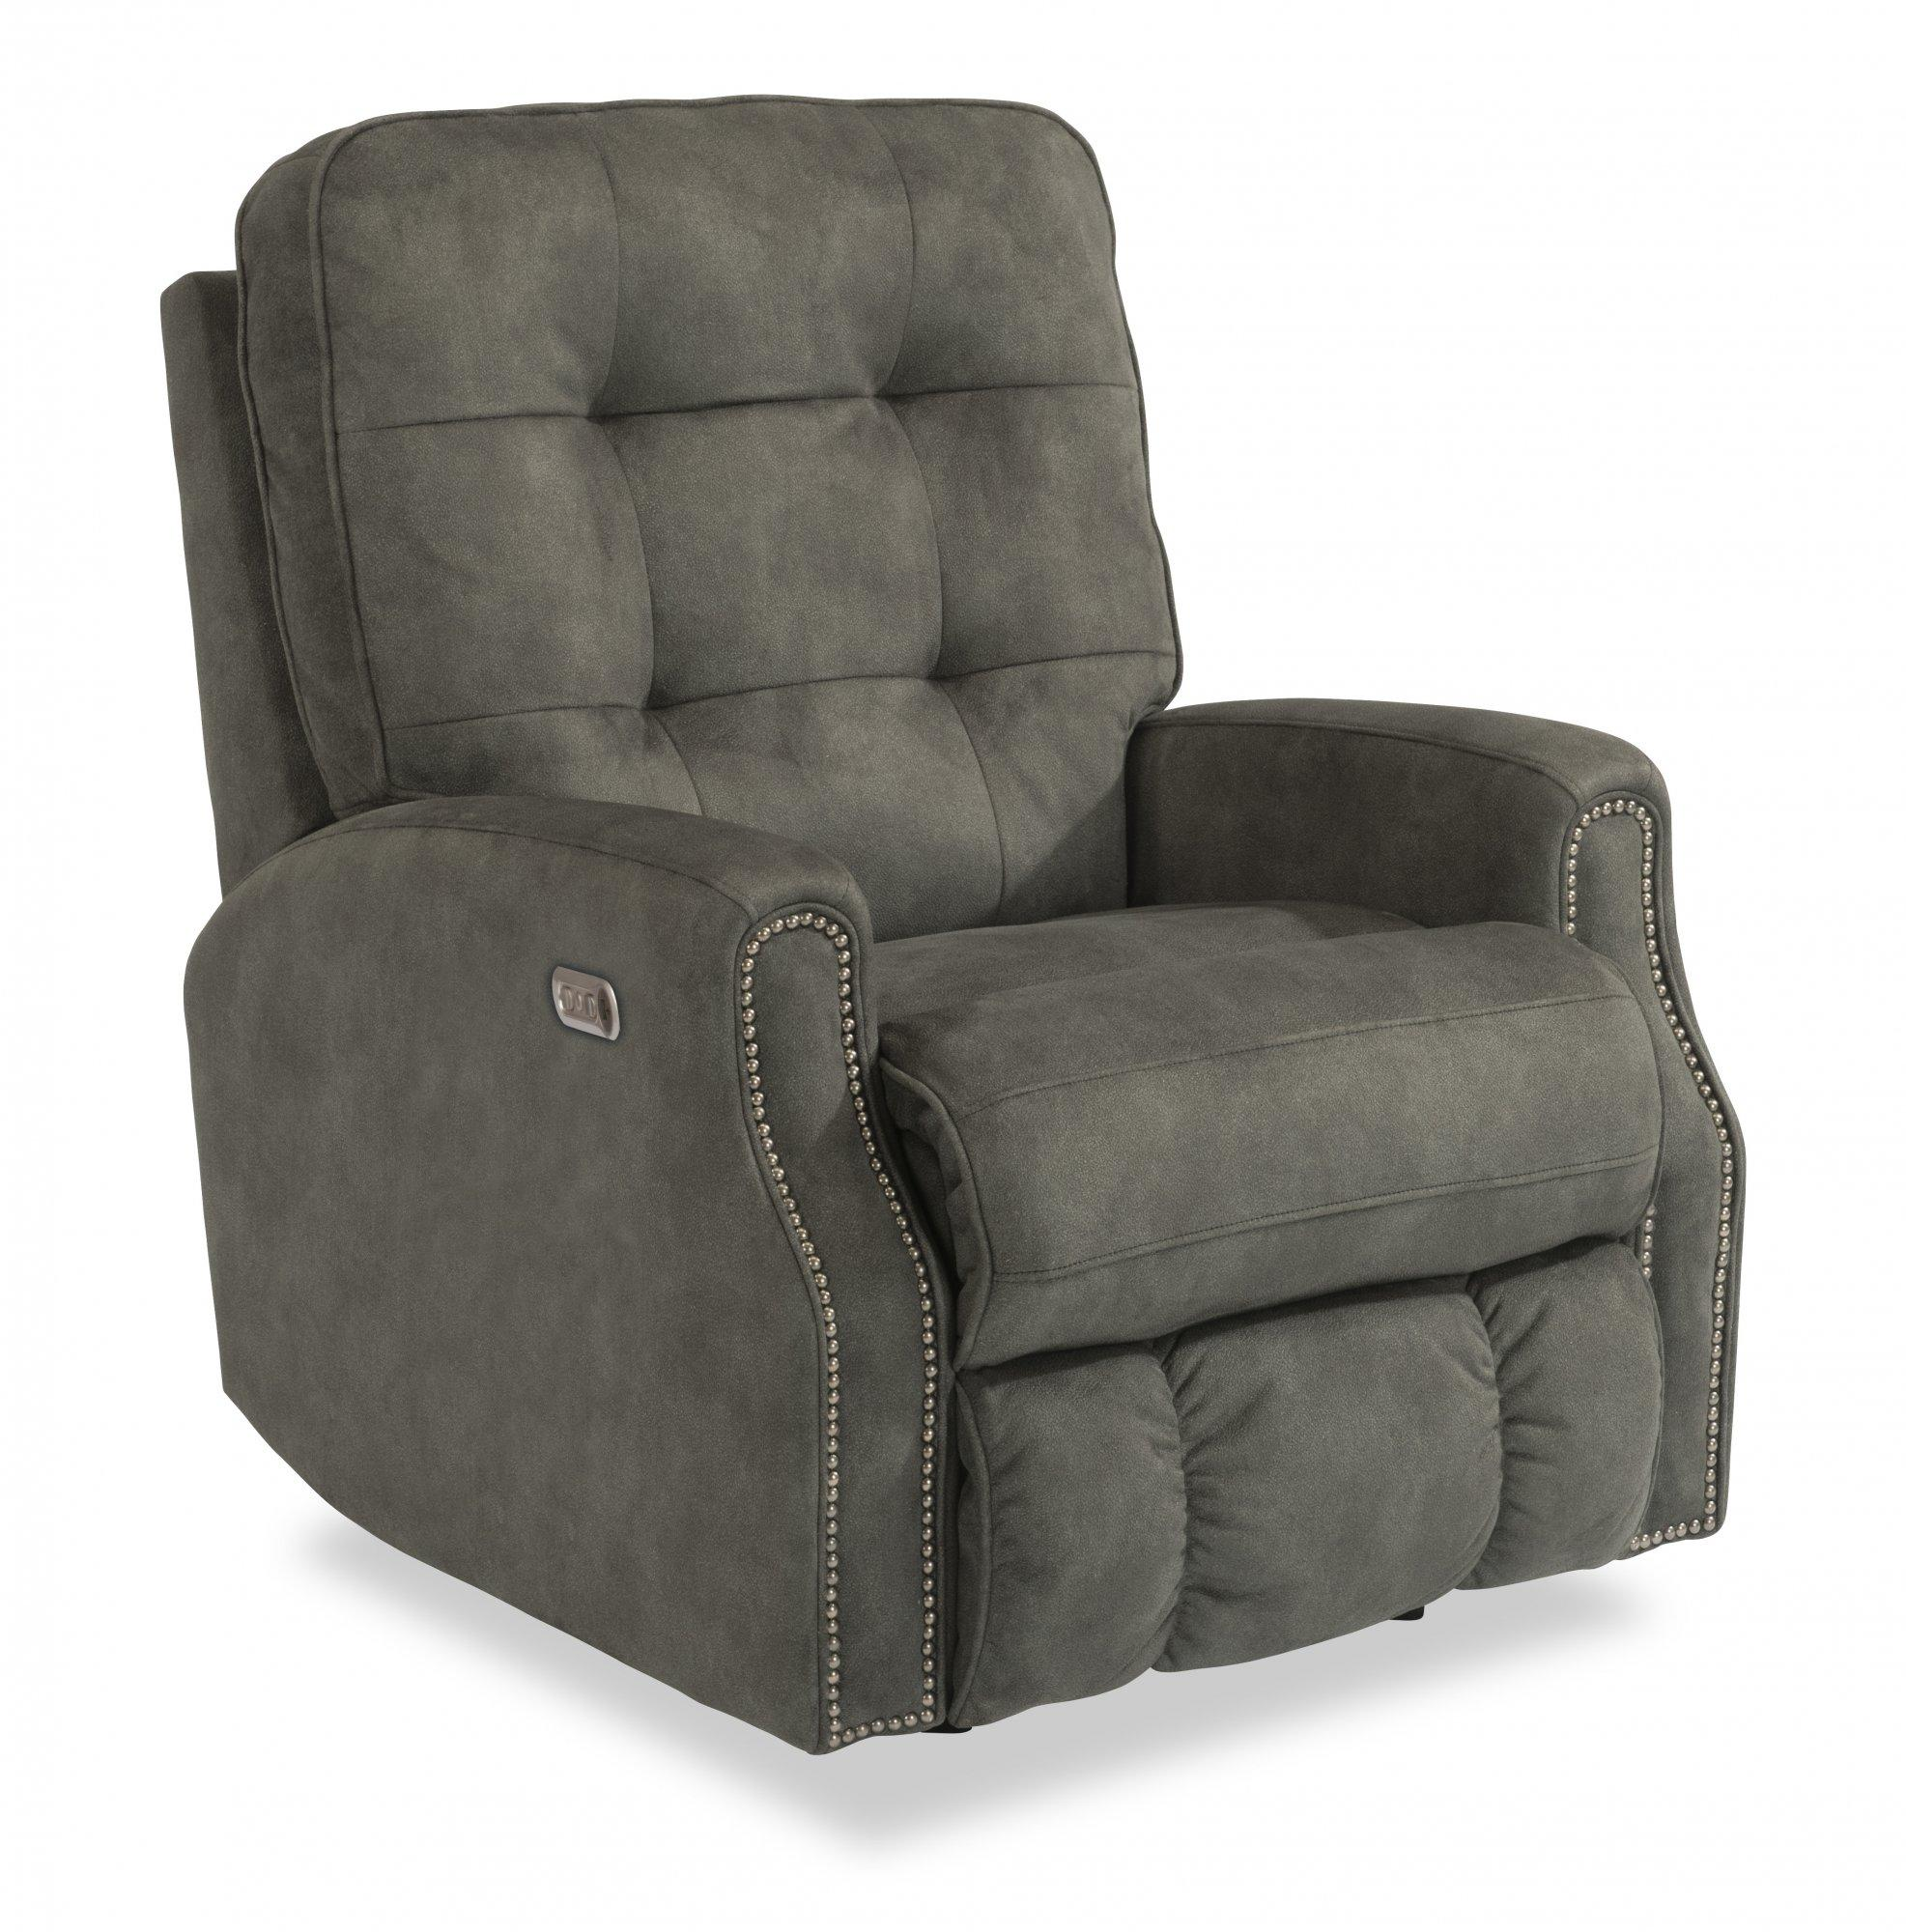 FlexsteelDevon Power Recliner With Power Headrest